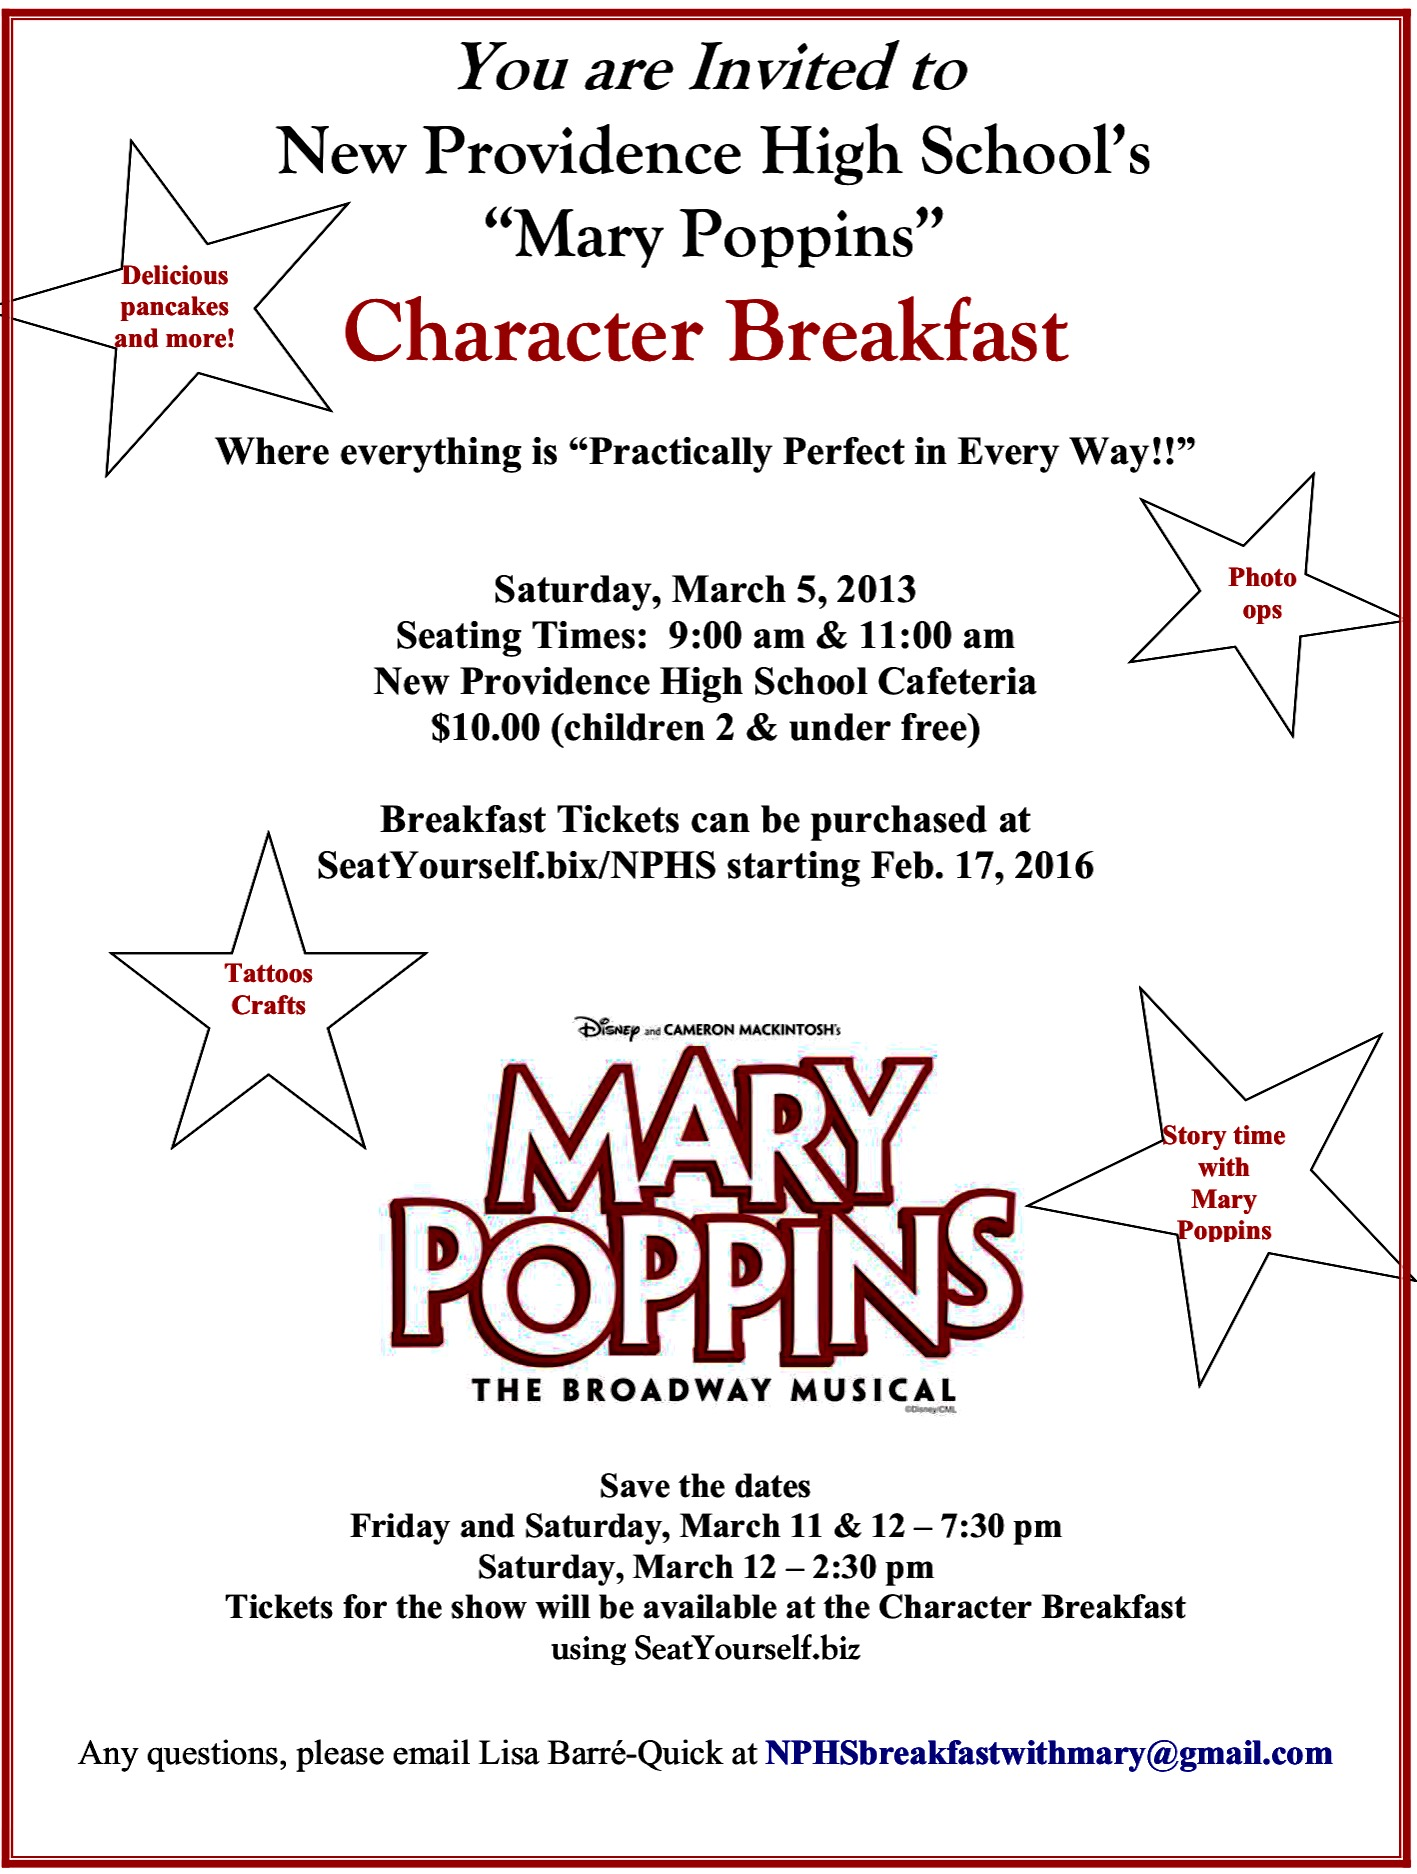 ea7477b010f0dc453849_mary_poppins_flyer.jpg